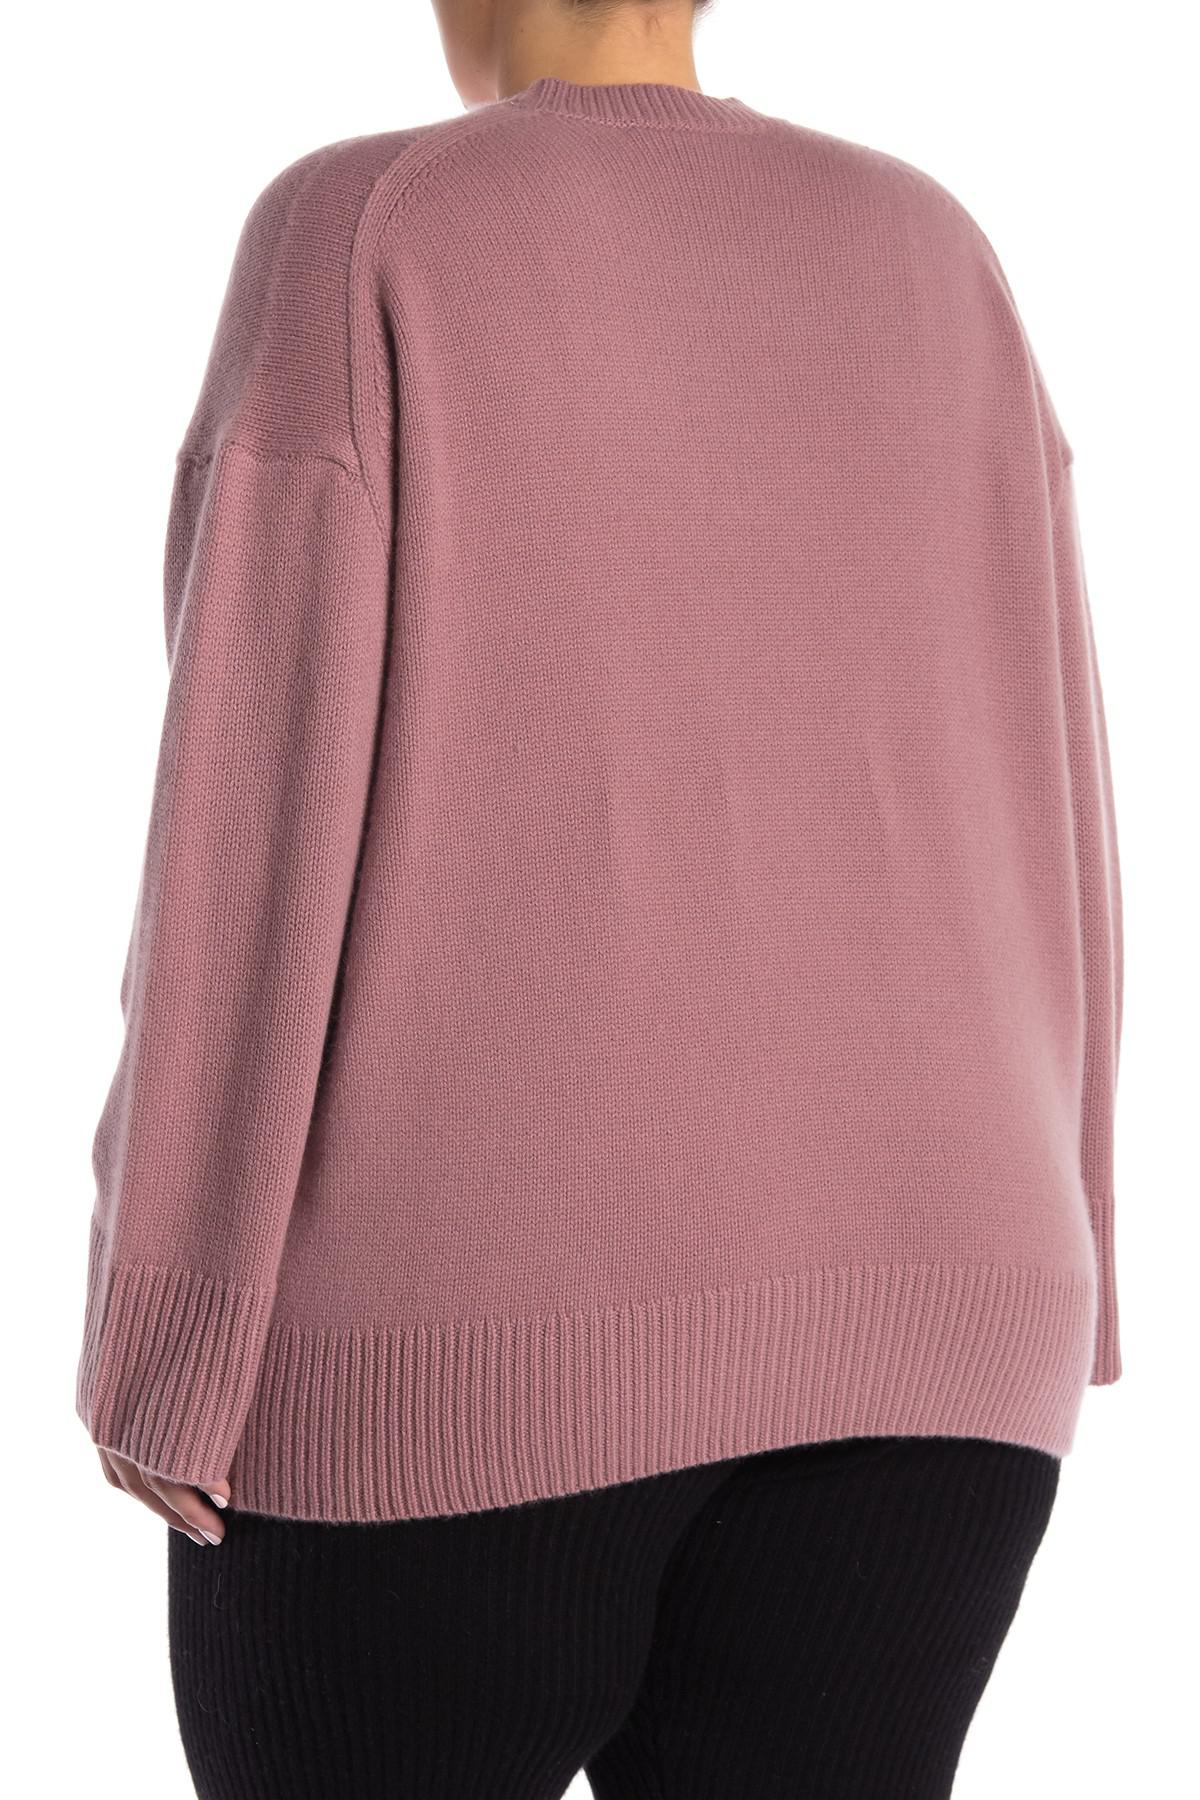 d436208e0ea Naked Cashmere - Pink Holliday Cashmere Sweater (plus Size) - Lyst. View  fullscreen